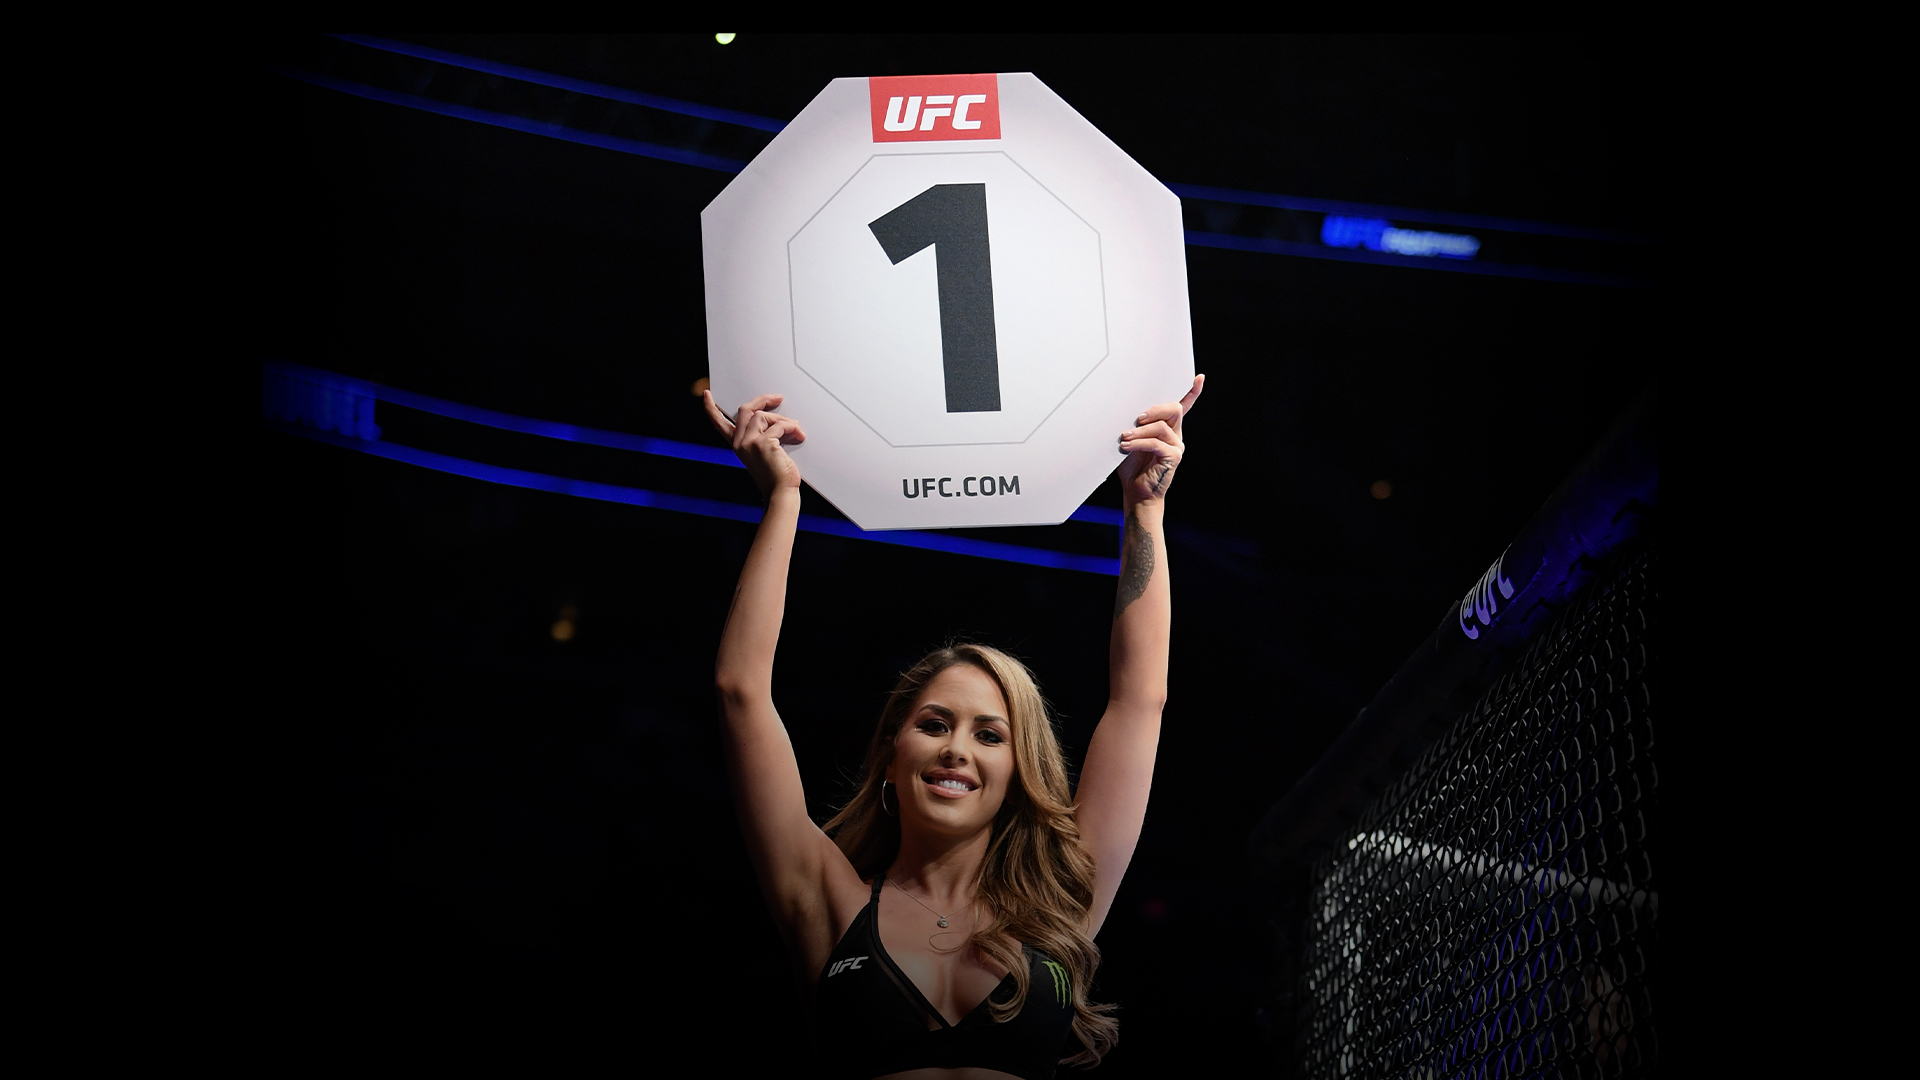 UFC Octagon girl Brittney Palmer introduces a round during the UFC Fight Night event at BB&T Center on April 27, 2019 in Sunrise, Florida. (Photo by Jeff Bottari/Zuffa LLC)